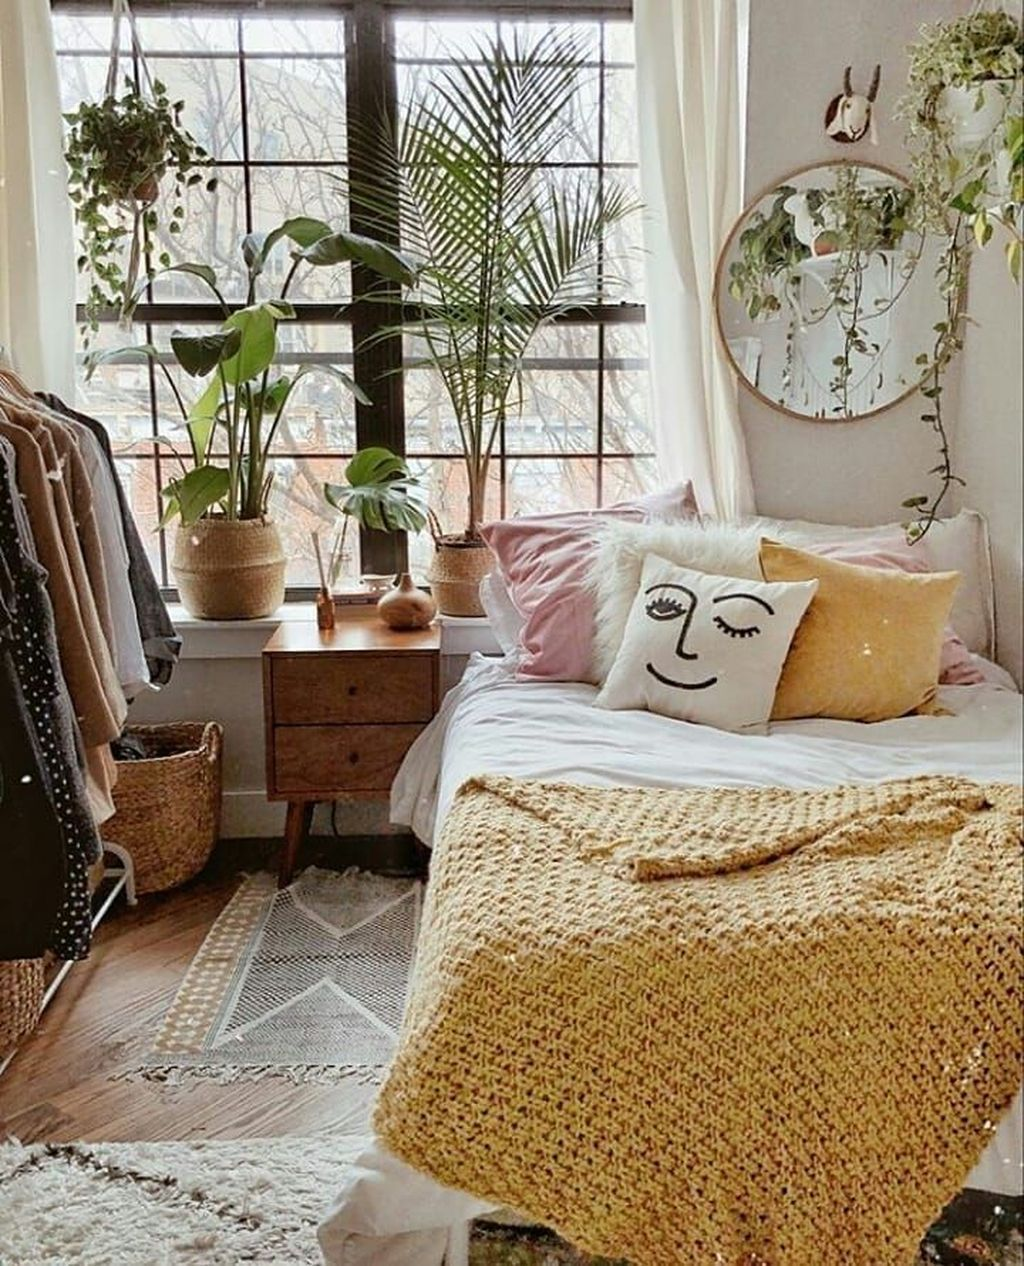 33 Admirable Small Bedroom Decor Ideas You Never Seen Before Homyhomee Small Bedroom Decor Bedroom Decor For Couples Small Bedroom Decor For Couples